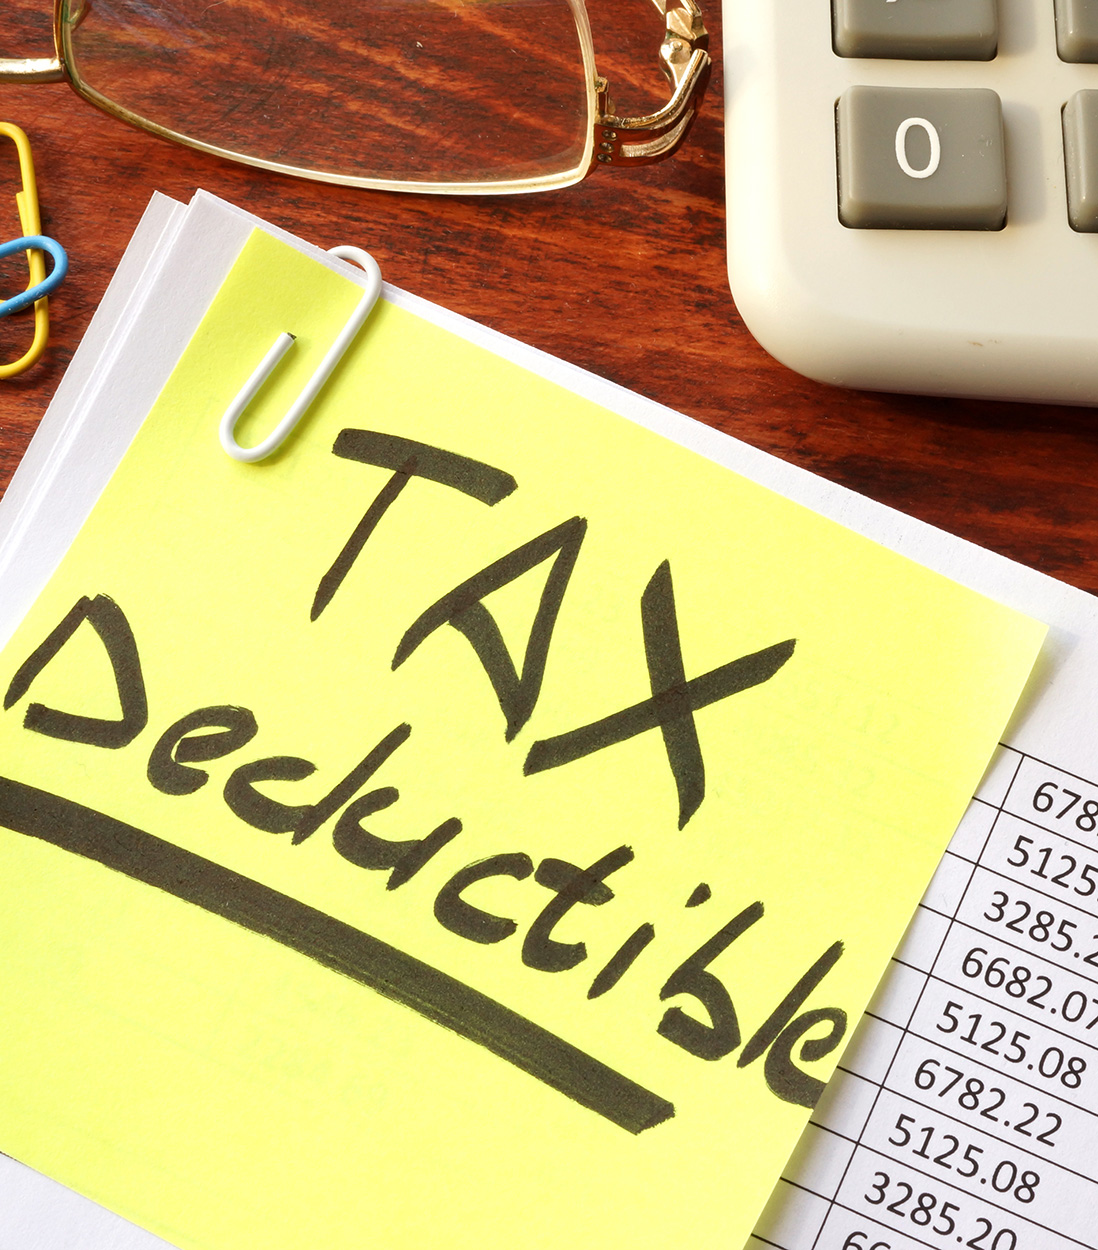 Tax Deductible - Bookkeeping services